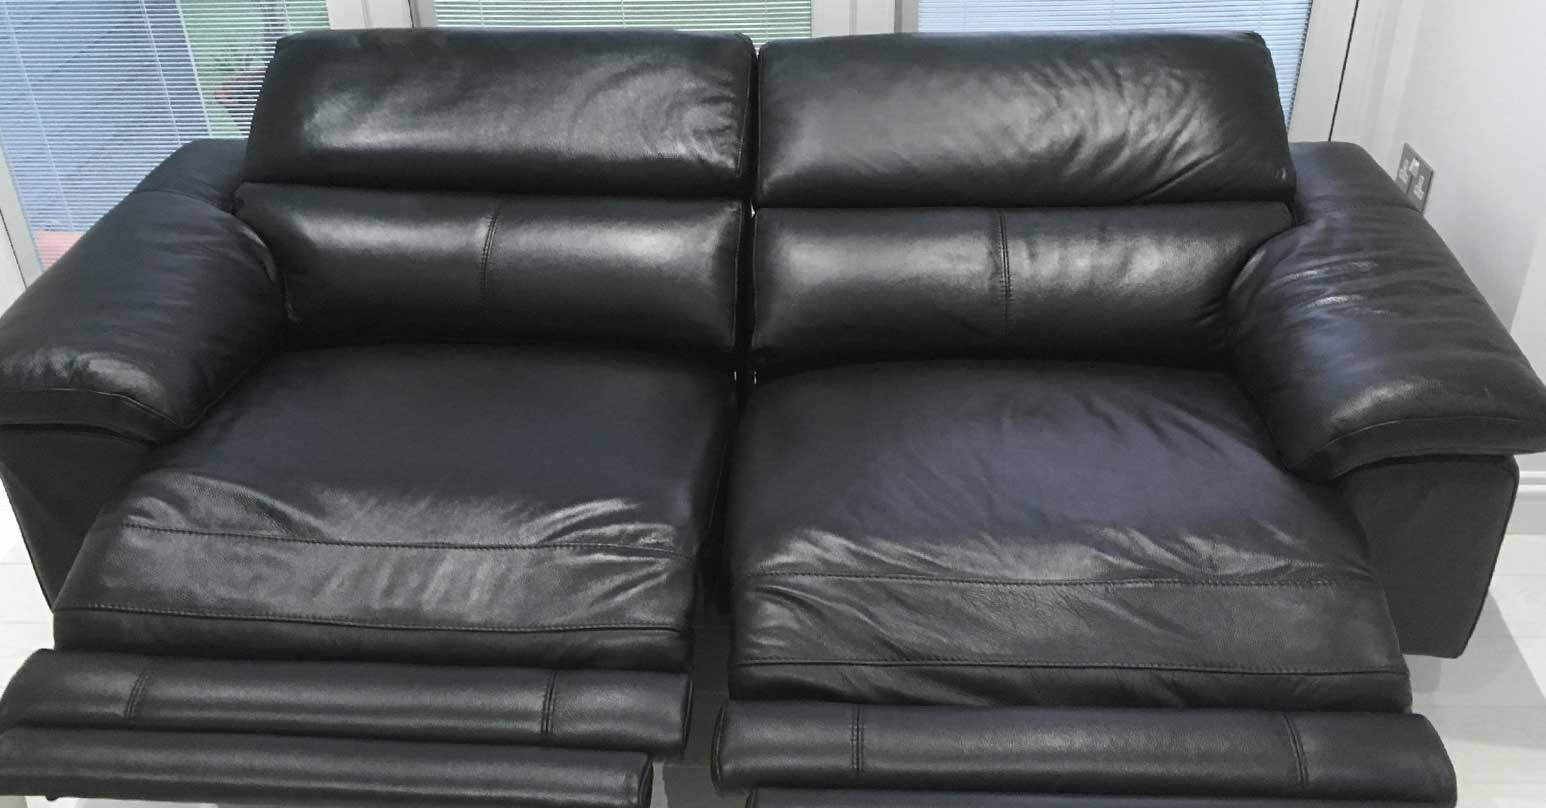 Leather sofa - After recolour